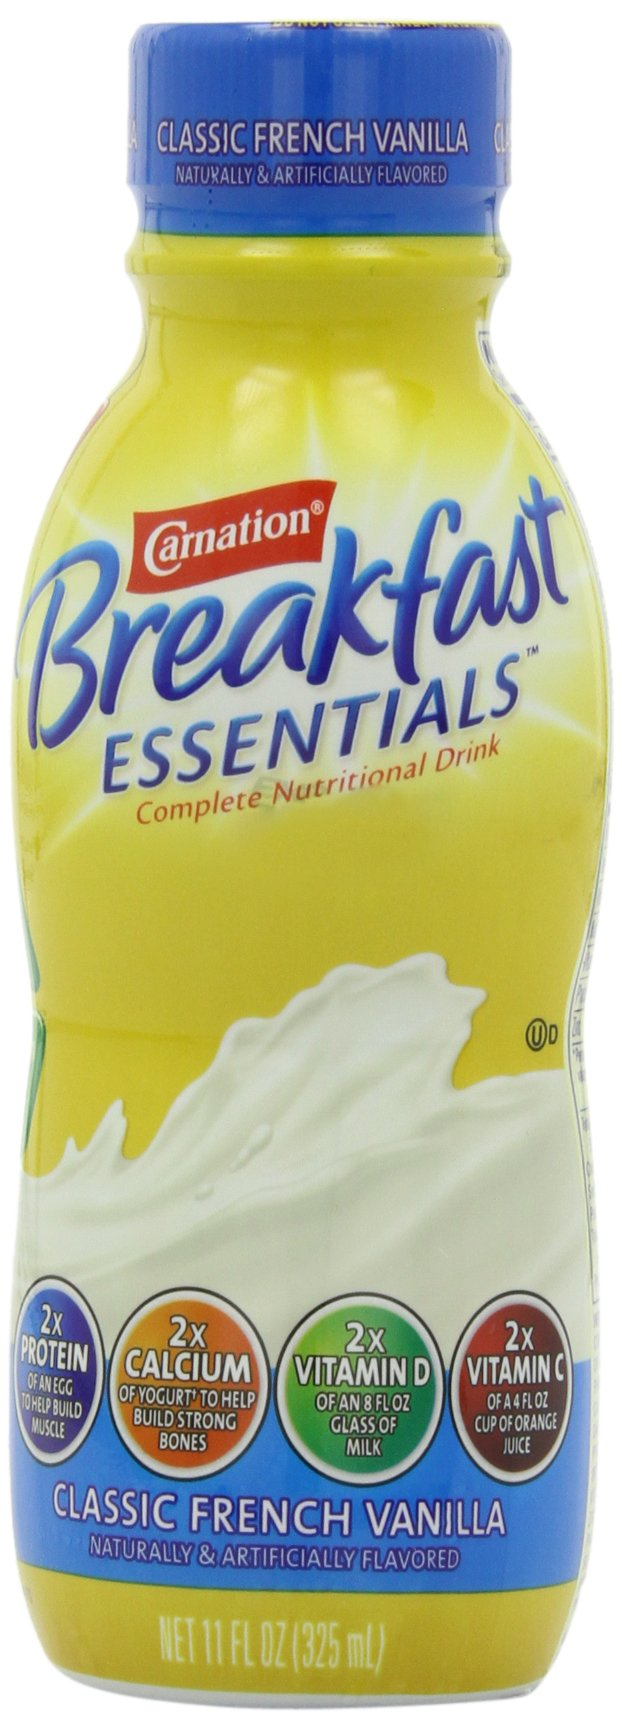 Carnation Breakfast Essentials Ready to Drink, Vanilla, 4-count, 11-Ounce Bottles (Pack of 3)